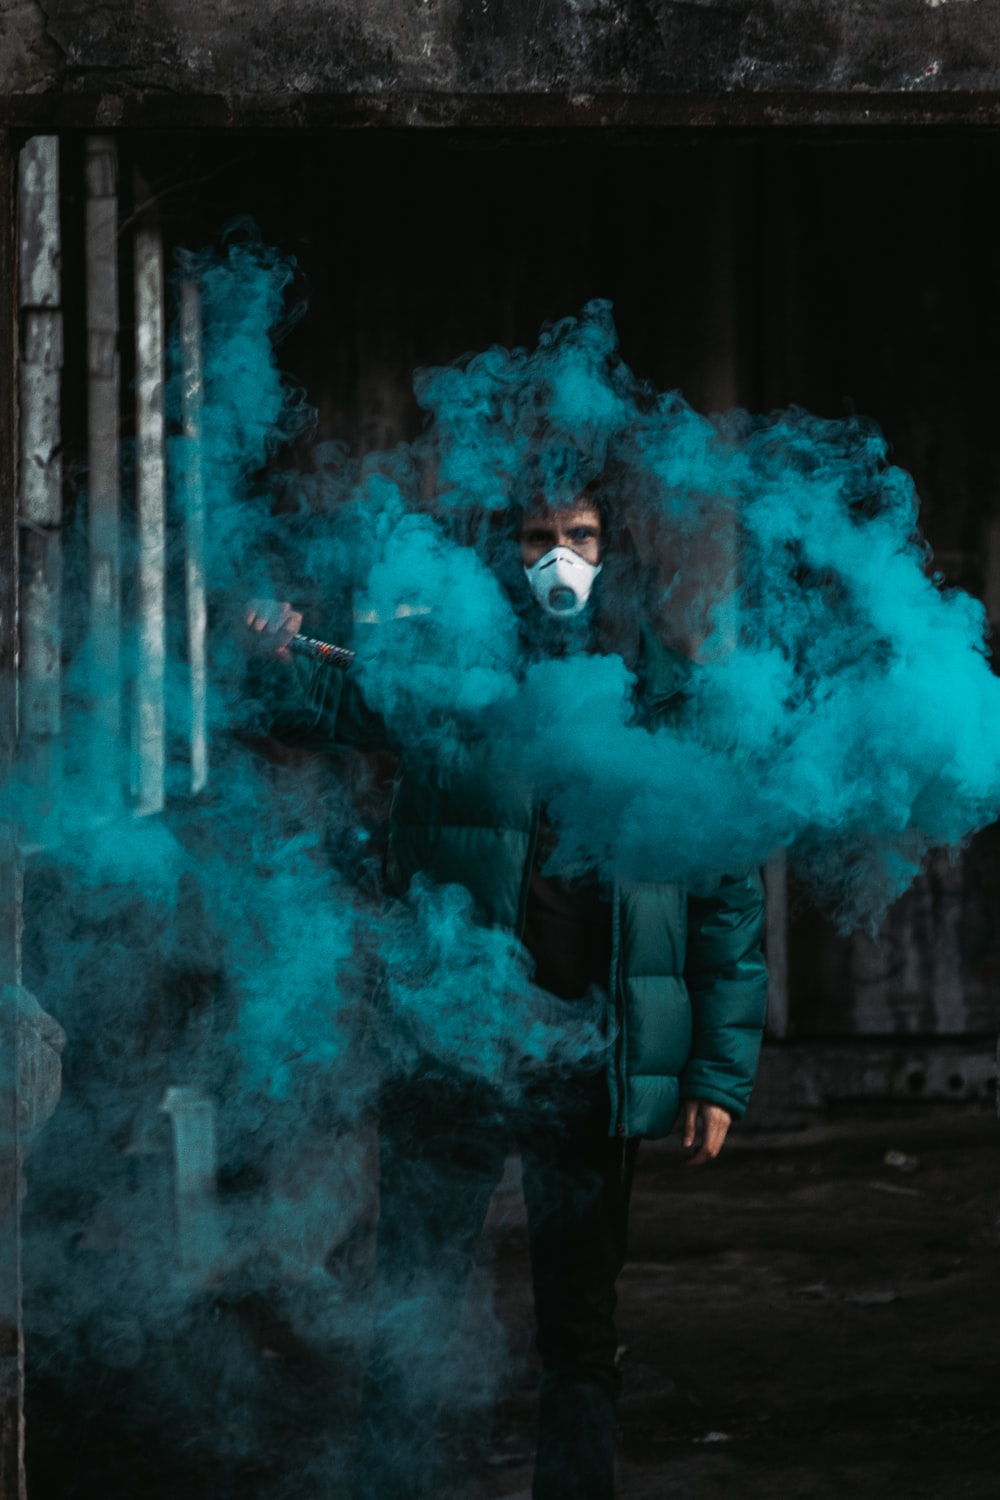 man in blue jacket with blue smoke